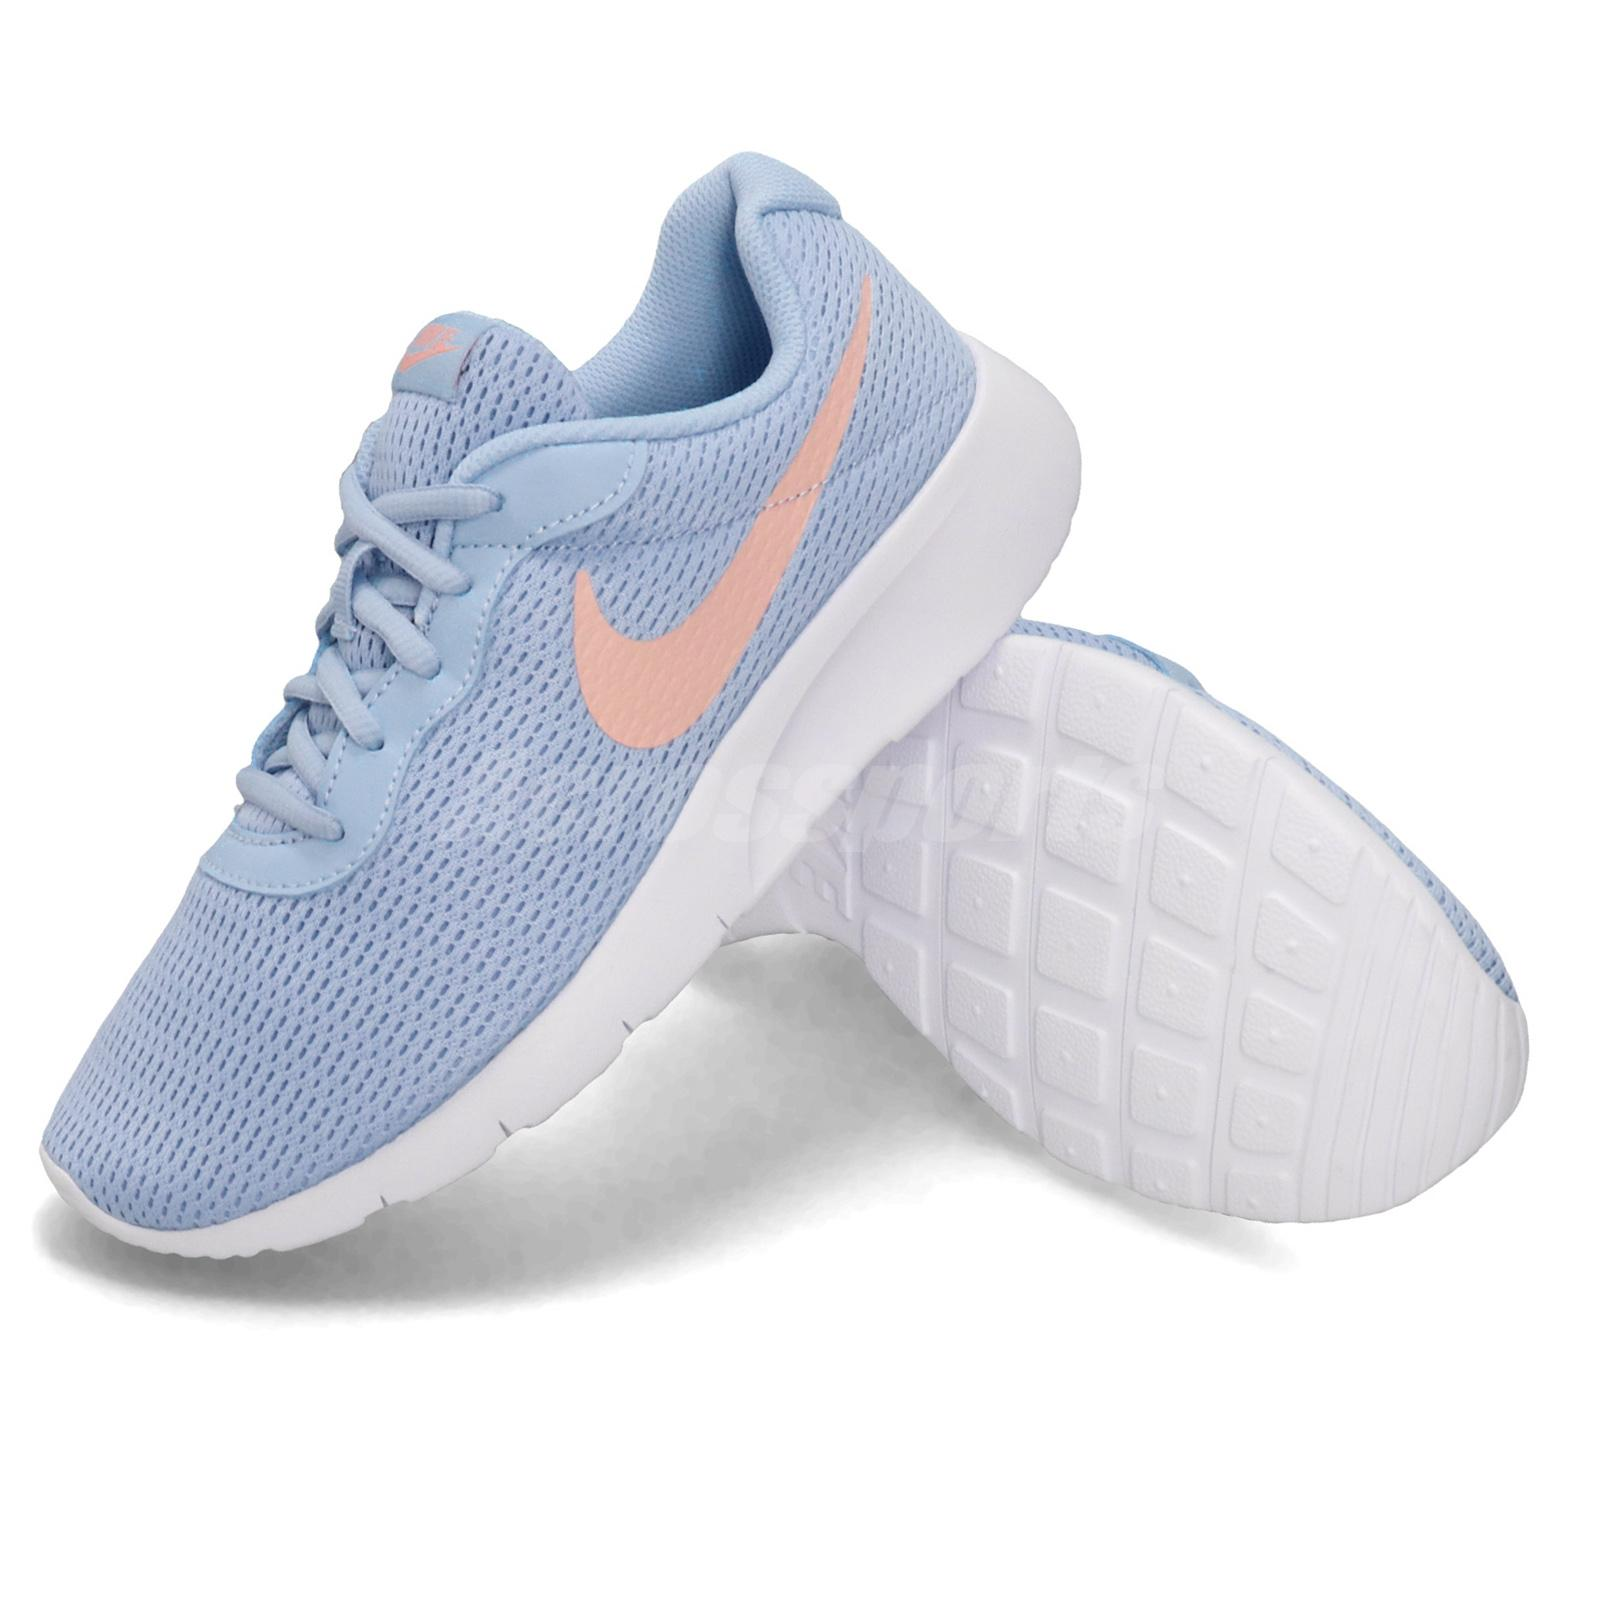 Details about Shoes Nike Tanjun GS 818384 605 Bleached Coral Pink Sneakers New Original